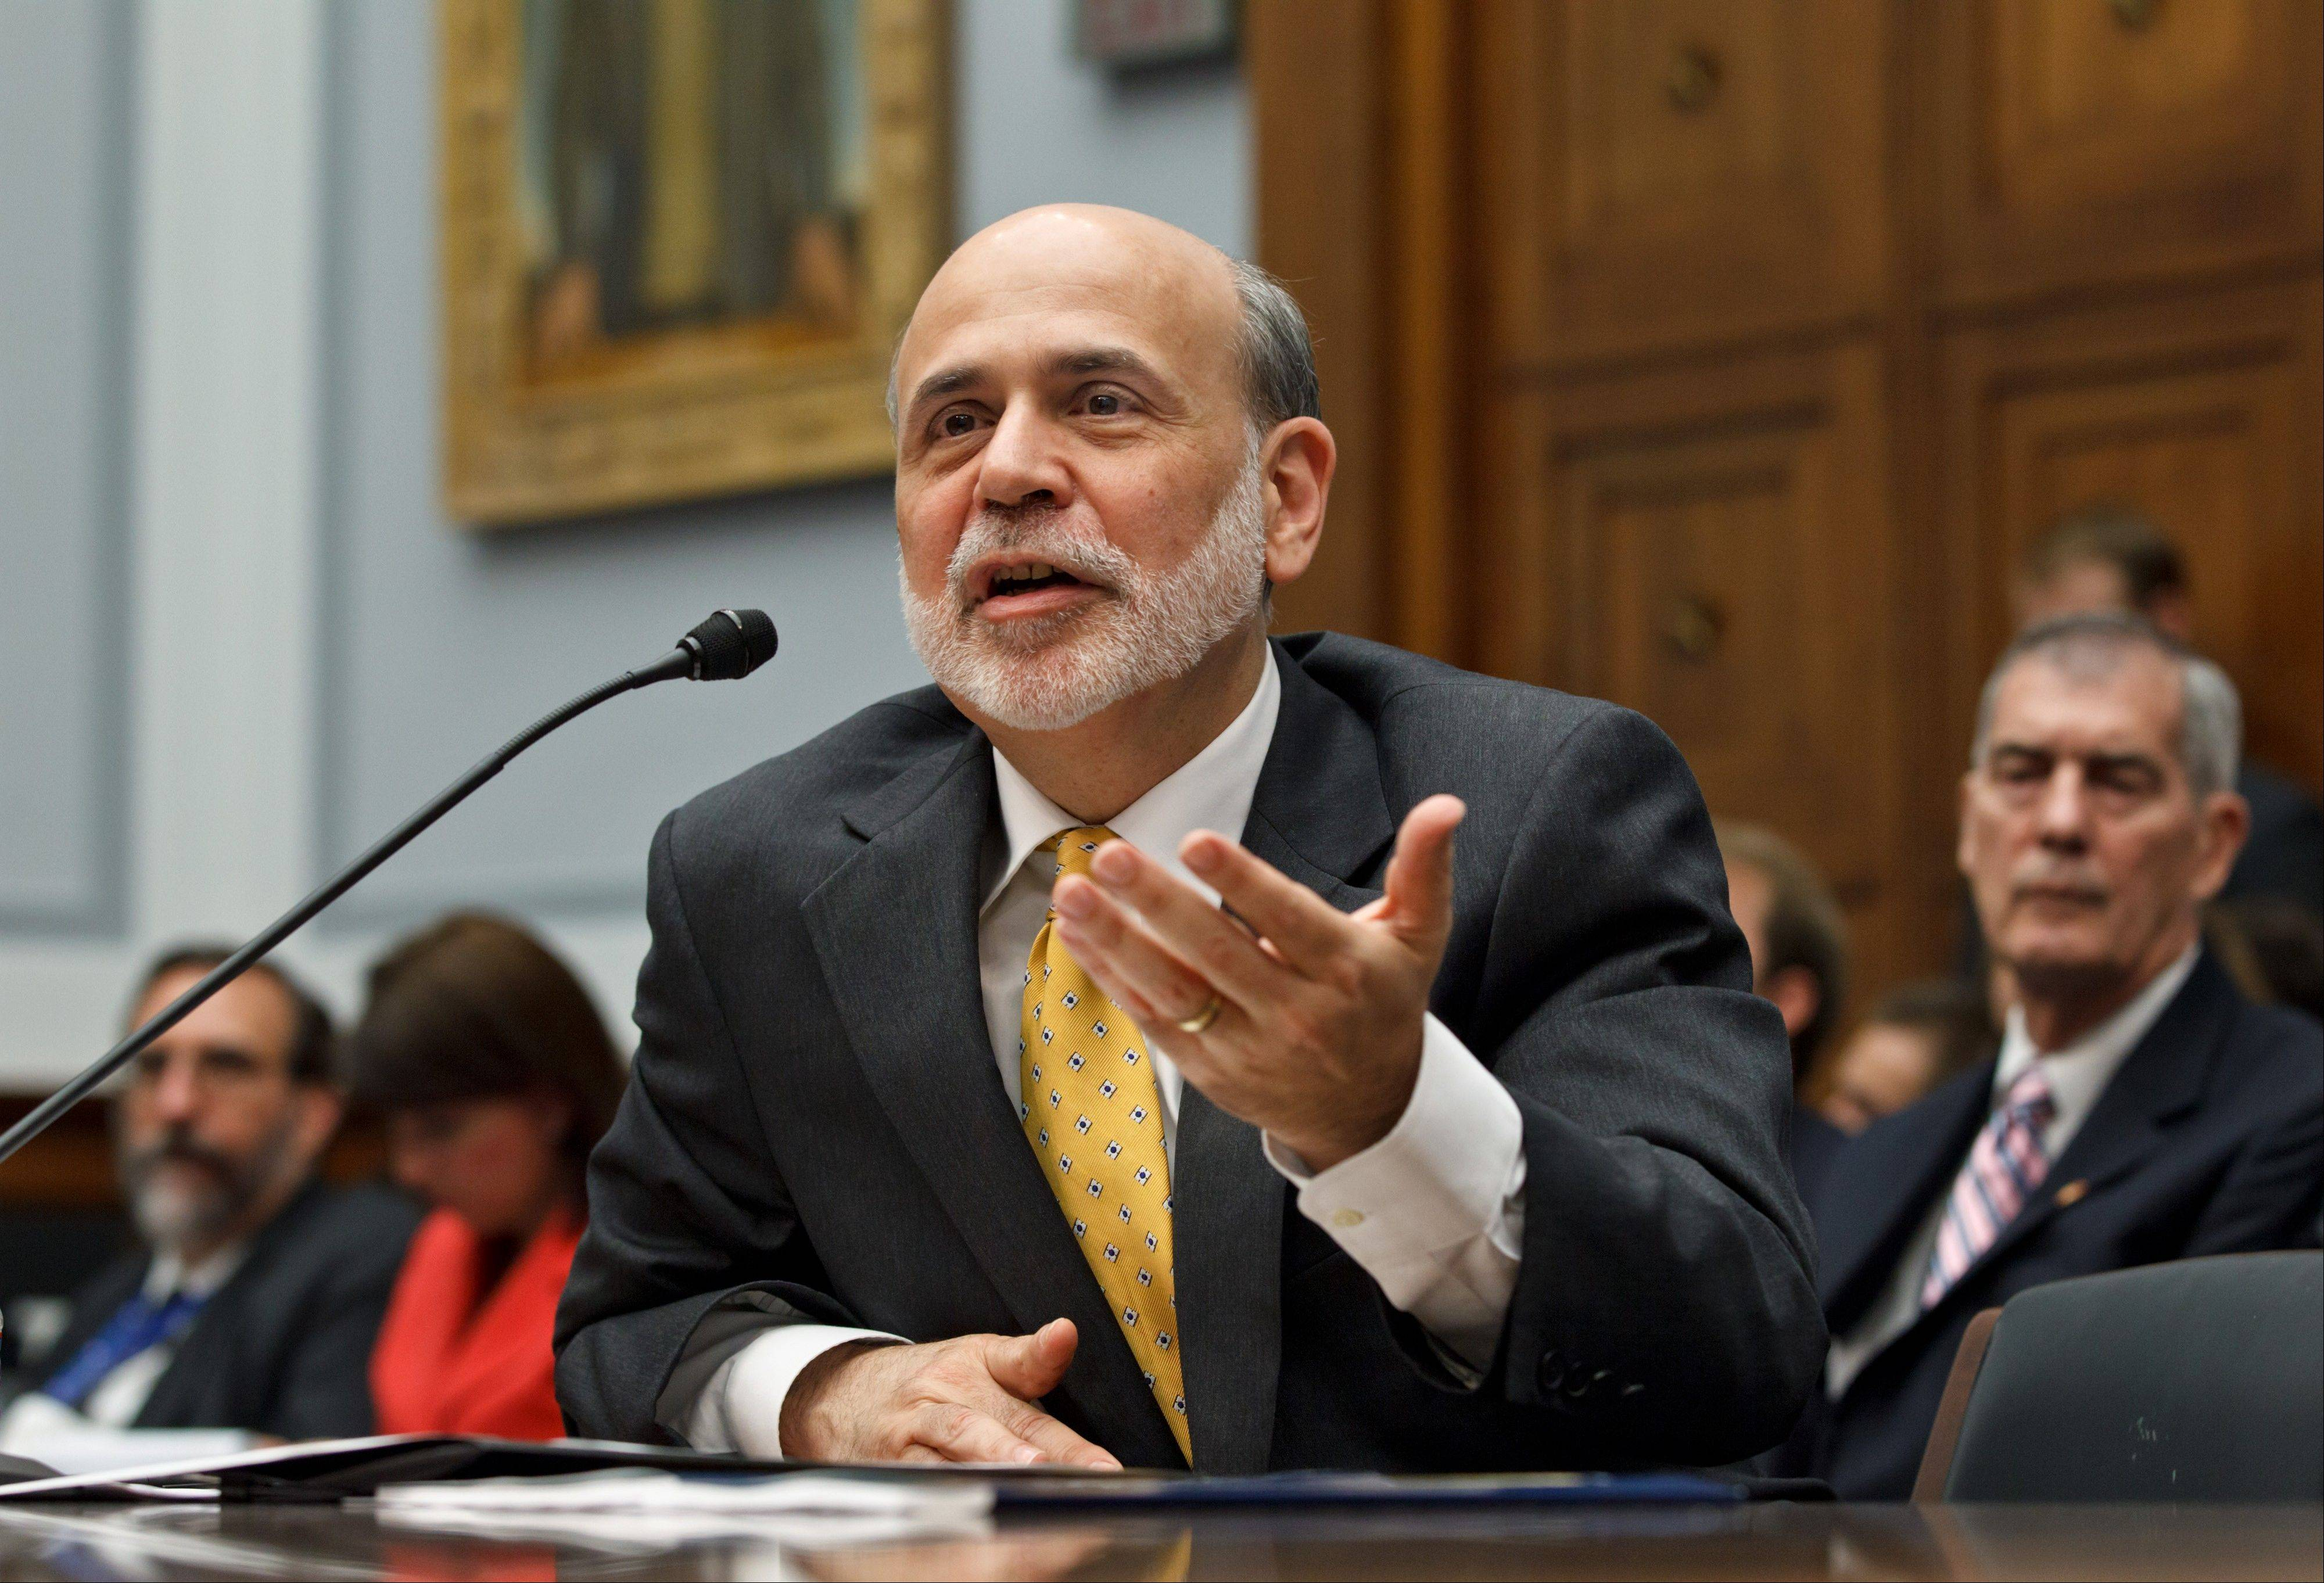 The Federal Reserve�s annual �stress tests� of major U.S. banks have become better able to detect risks, Chairman Ben Bernanke said Monday night. He said the tests show that the banking industry has grown much healthier since the financial crisis.